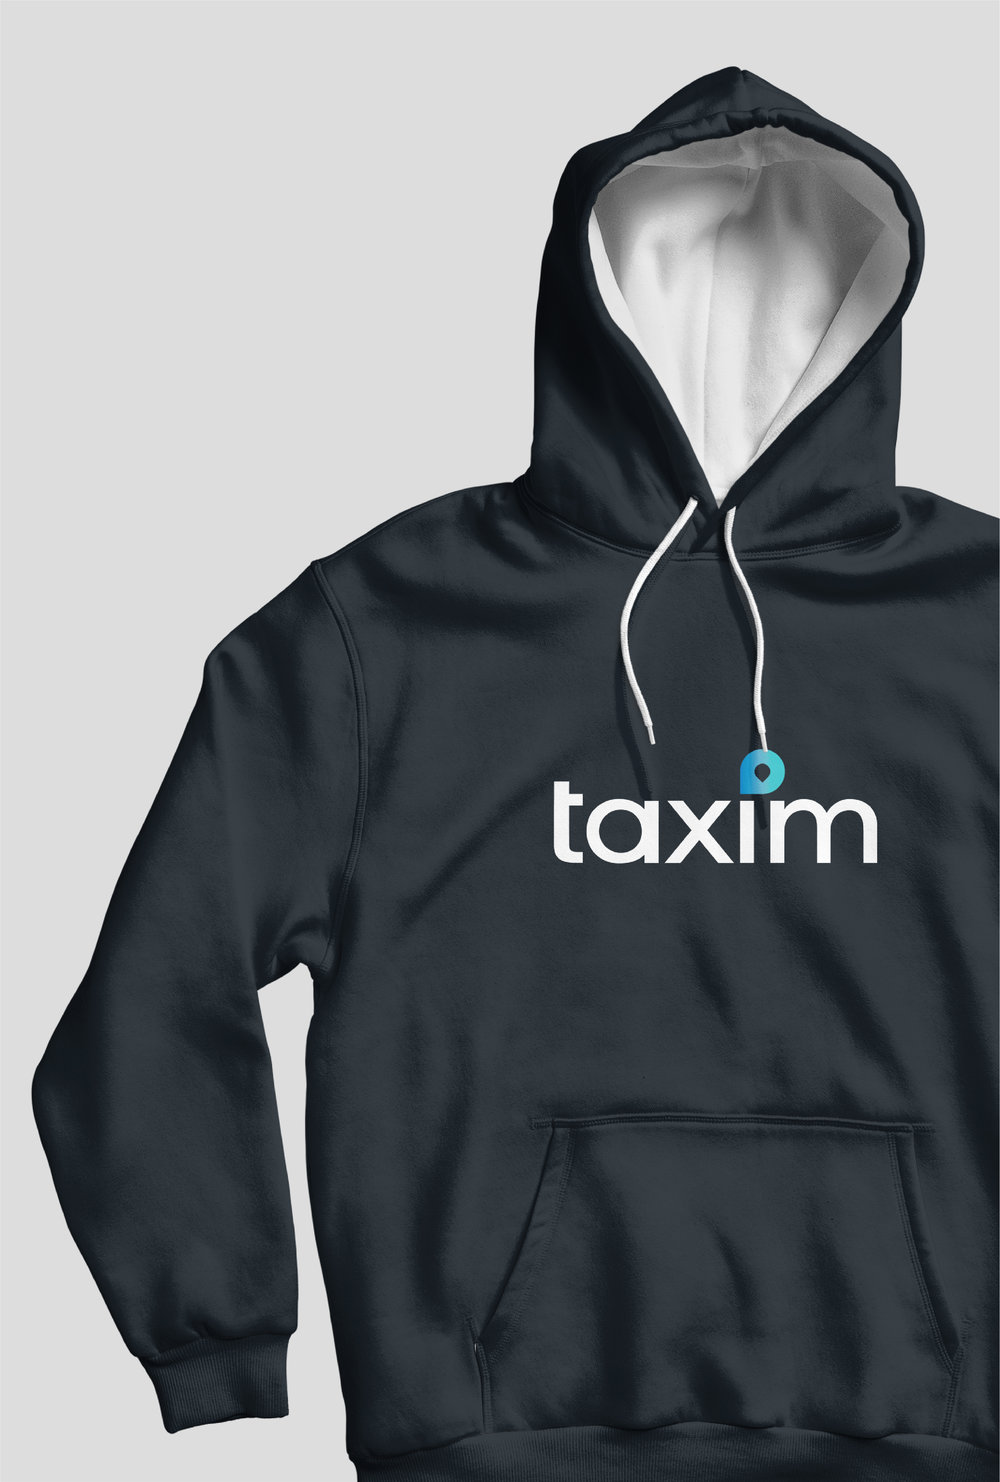 taxim_behance_project1-21.jpg